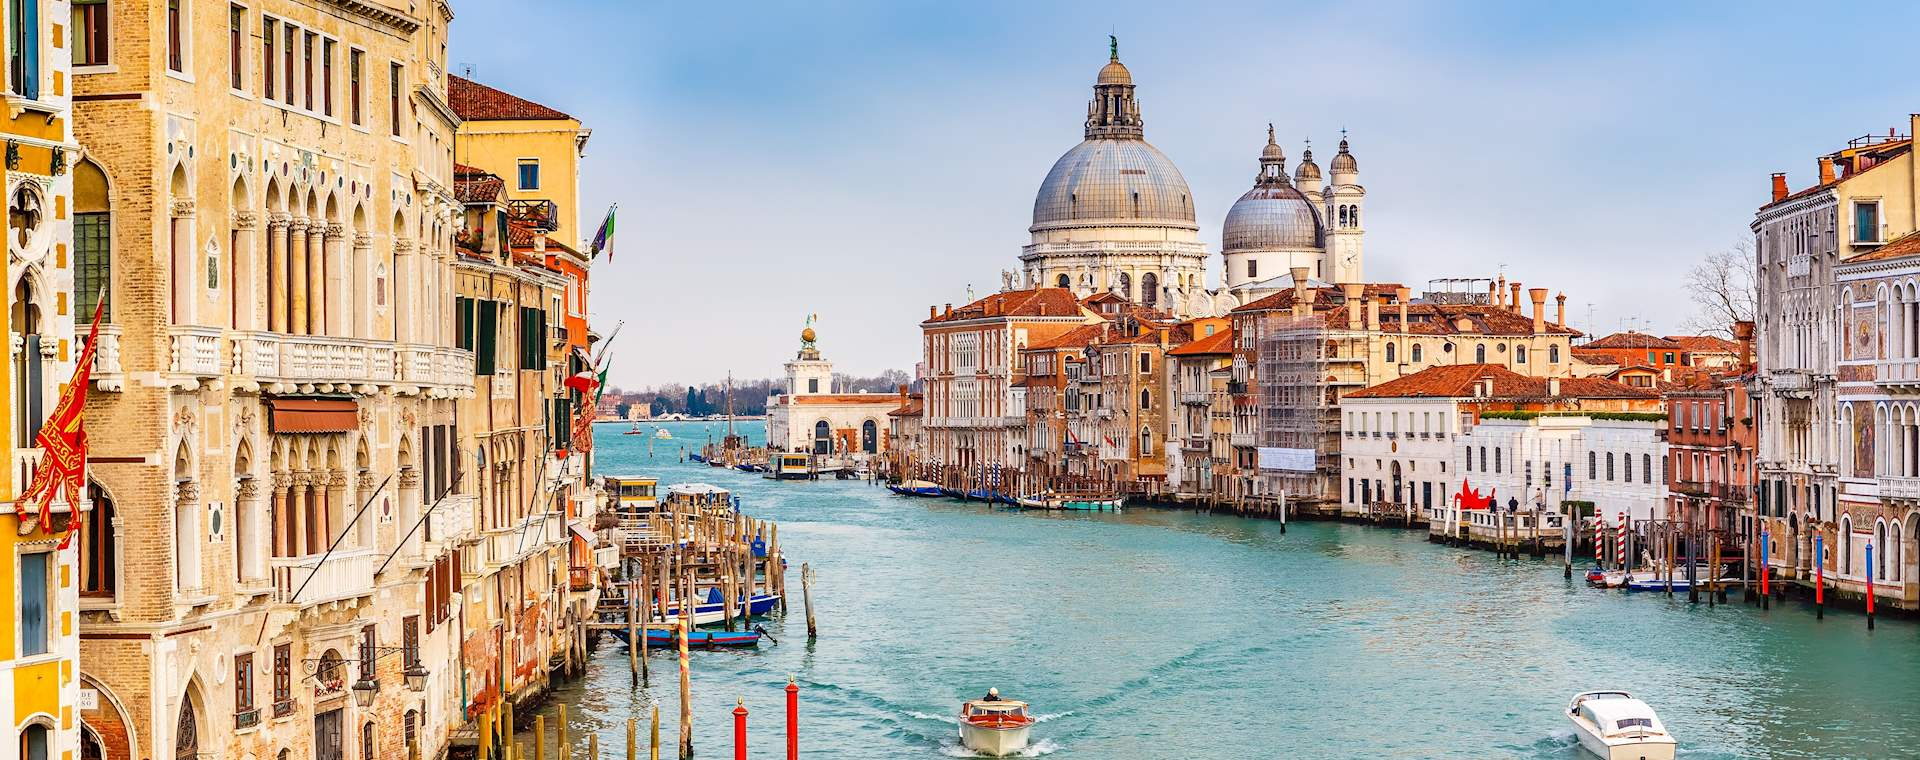 Best of Venice Tour with St. Mark's Basilica & Gondola Ride